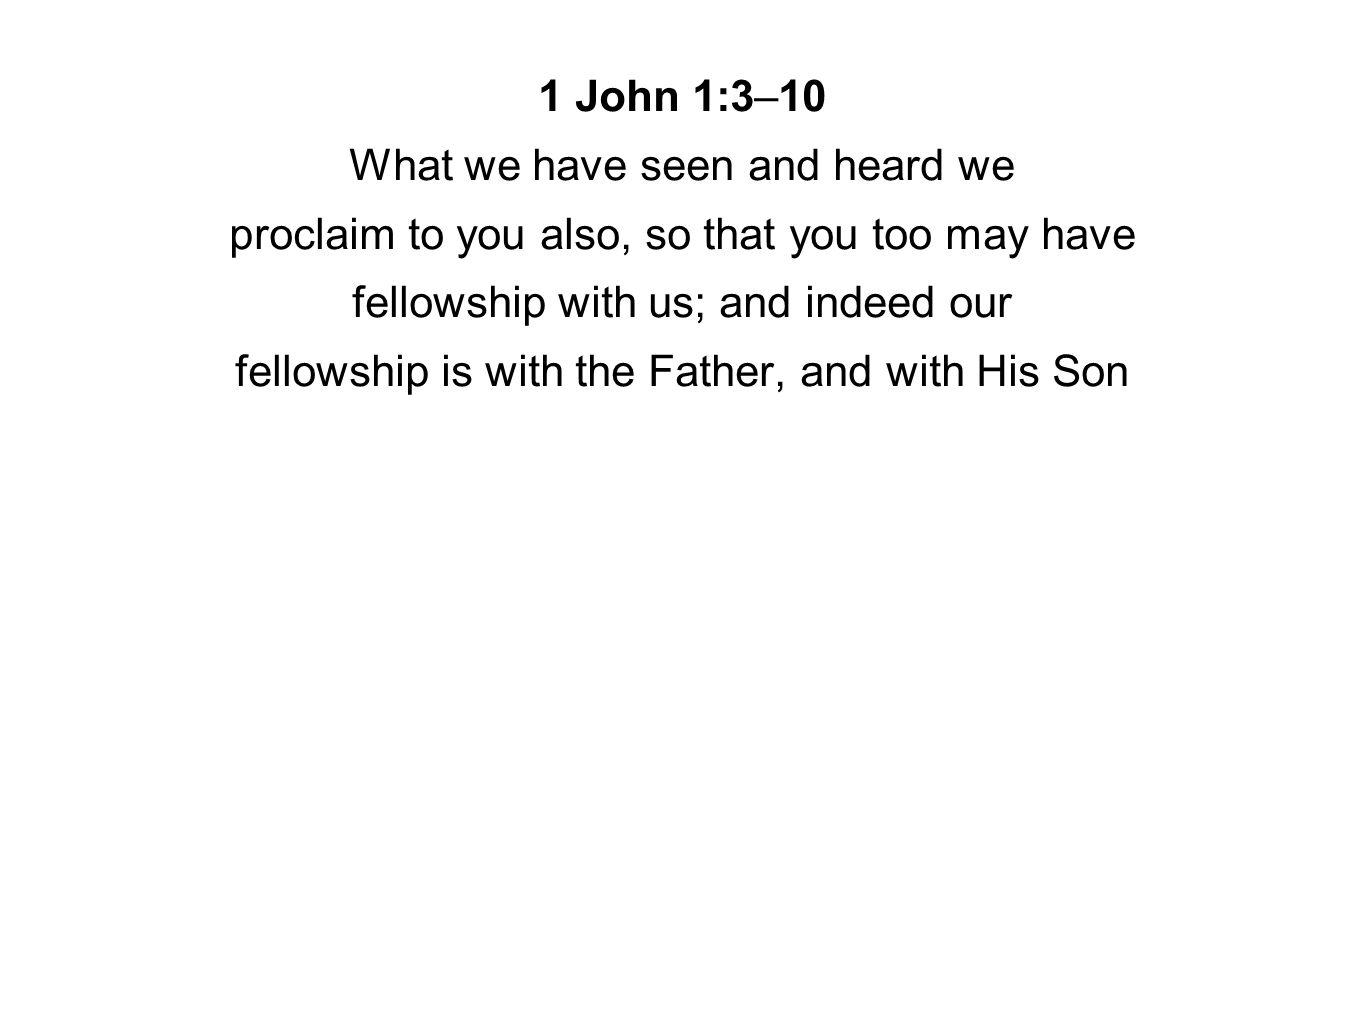 1 John 1:3–10 What we have seen and heard we proclaim to you also, so that you too may have fellowship with us; and indeed our fellowship is with the Father, and with His Son